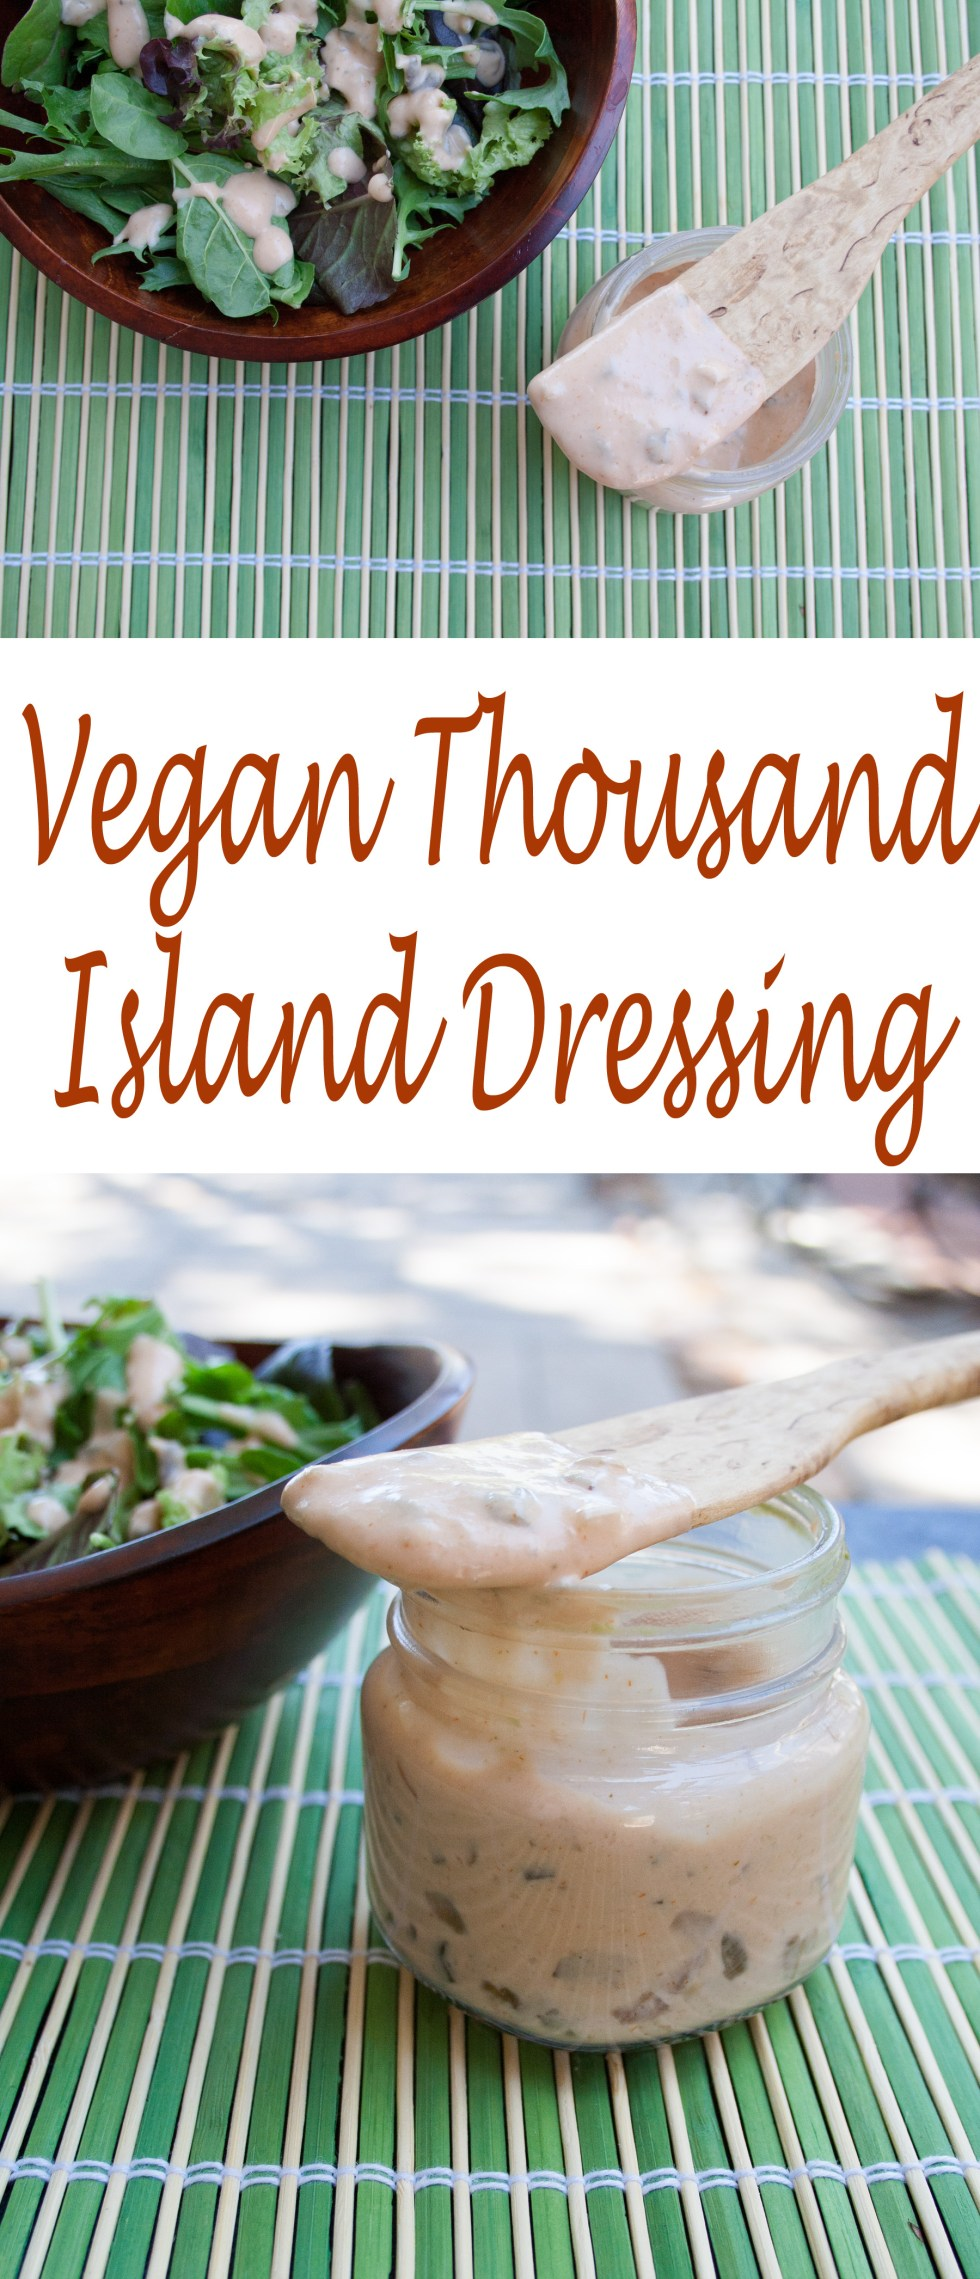 Vegan Thousand Island Dressing - This dressing can be made two different ways, depending upon your preference for a healthier dressing or slightly more indulgent.